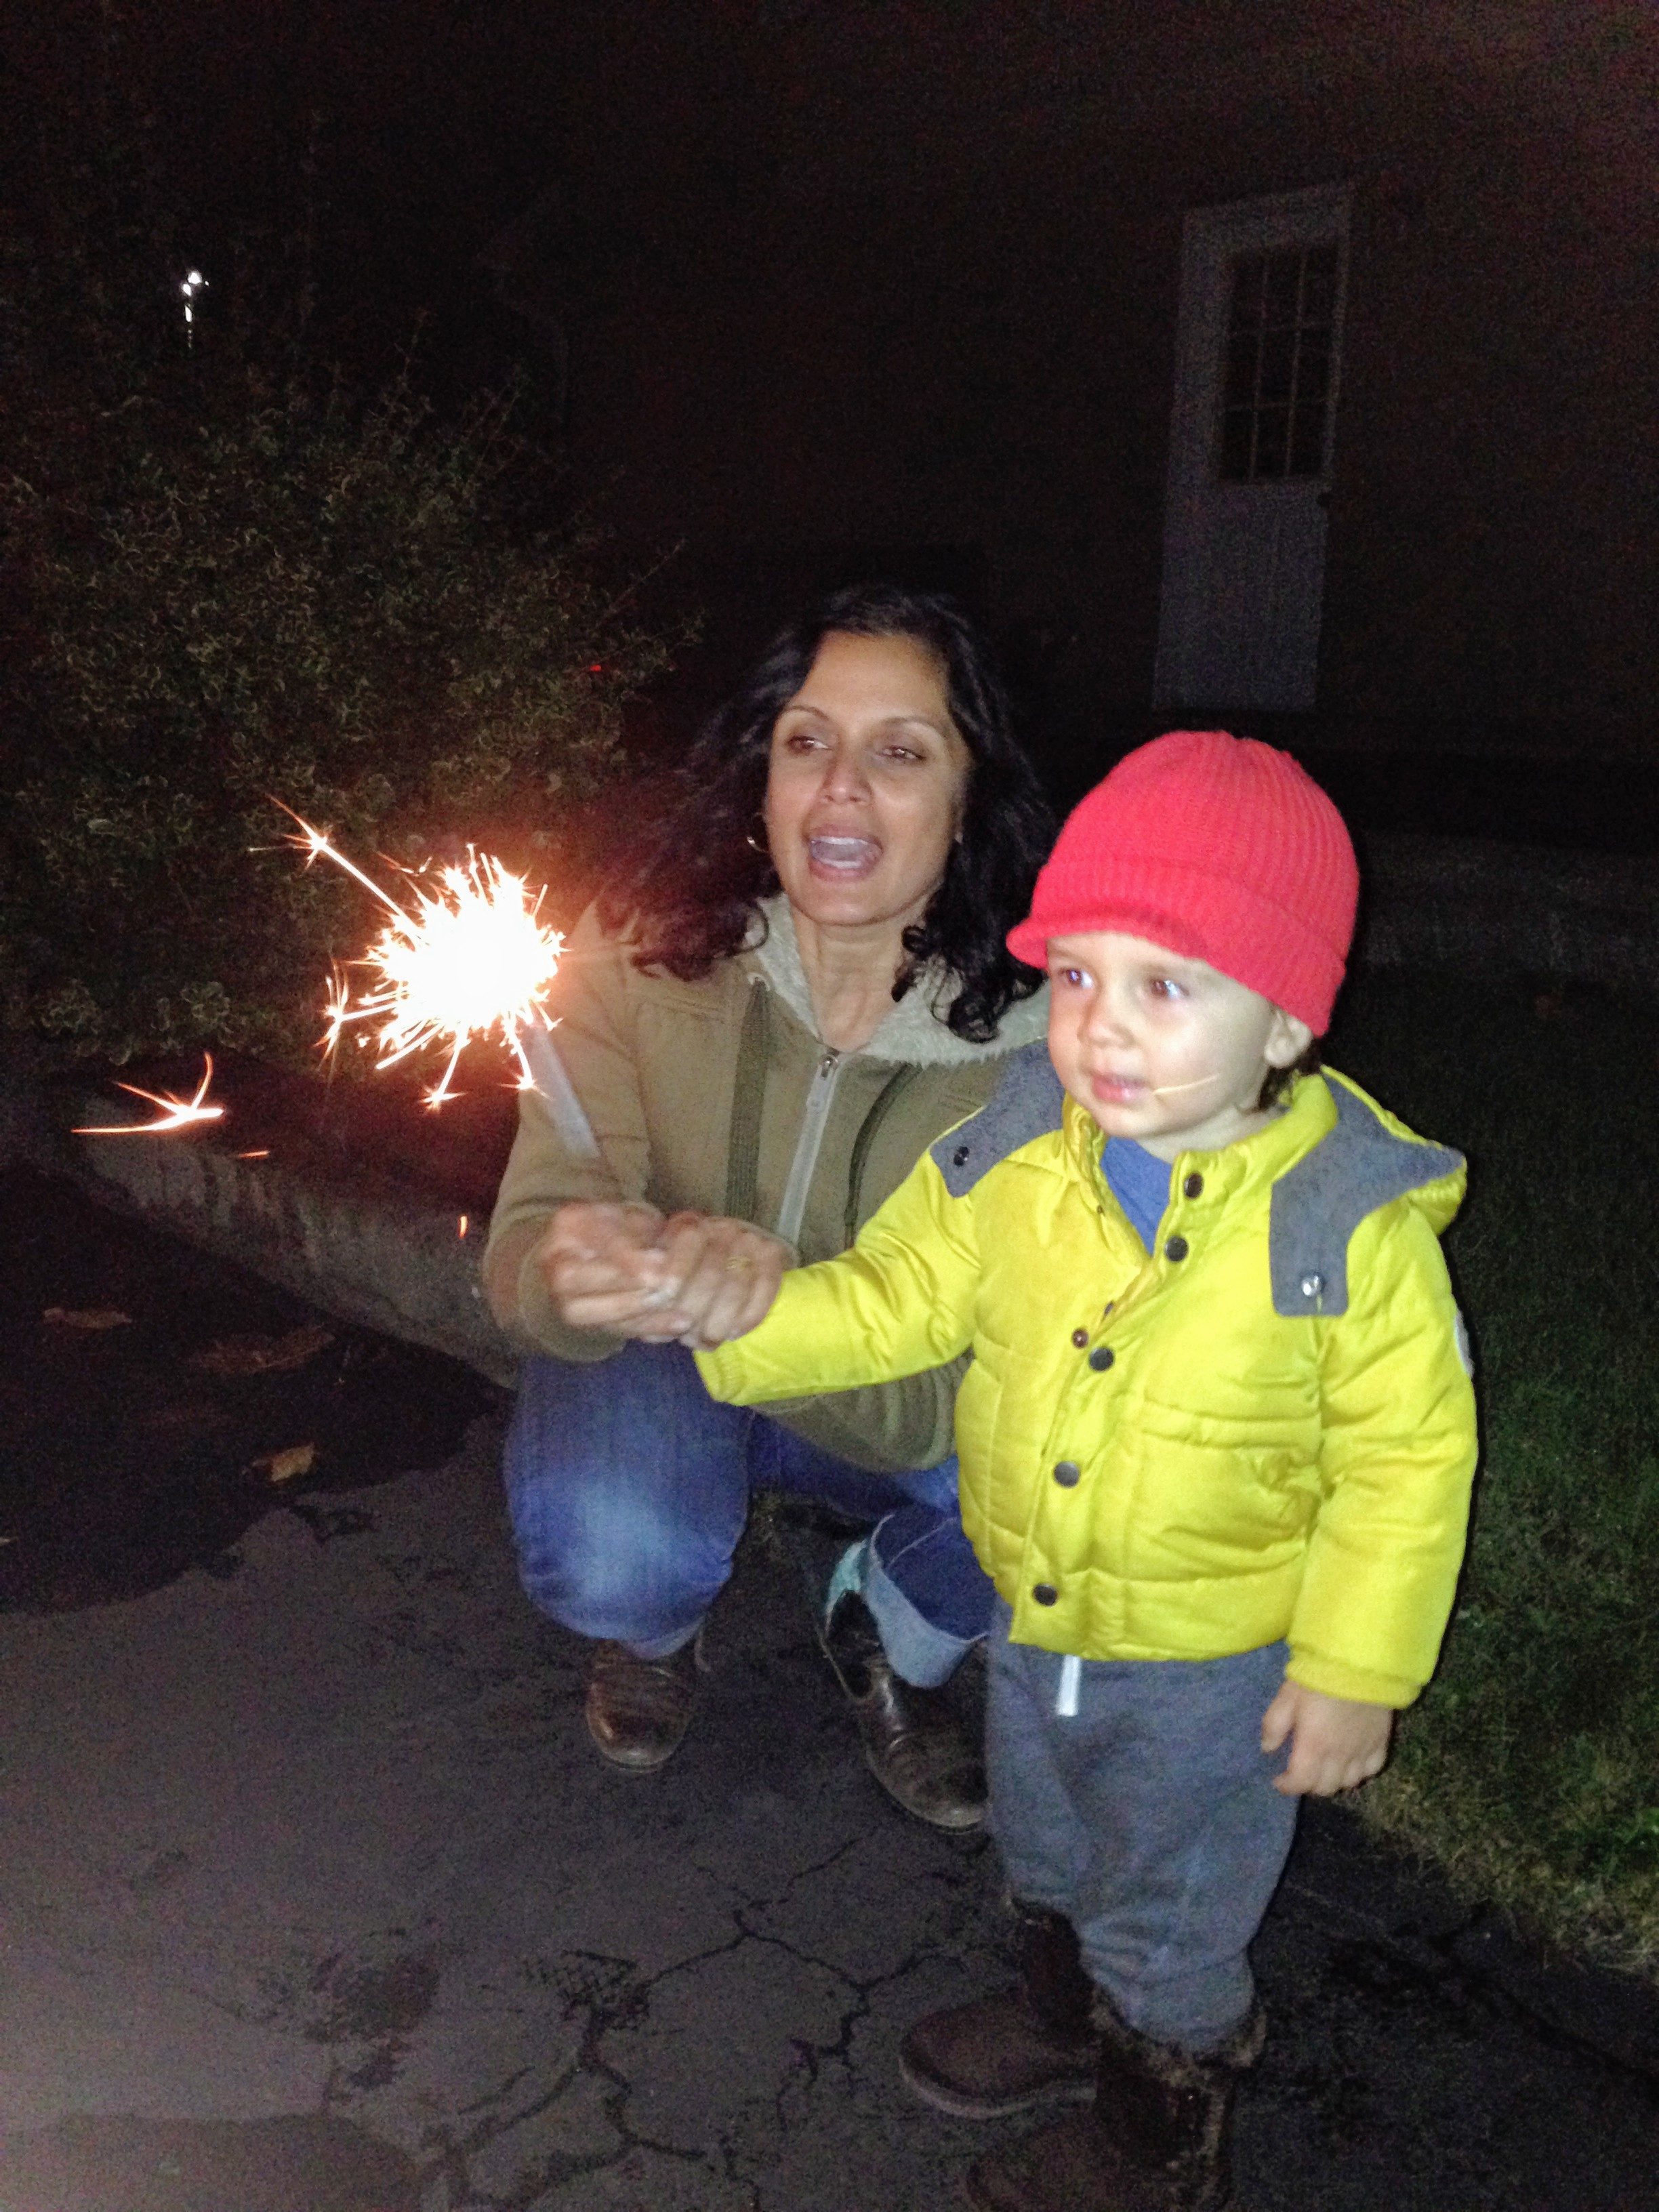 """""""He was a bit nervous to light the sparkler but ended up loving it,"""" says Henna Patel, who..."""